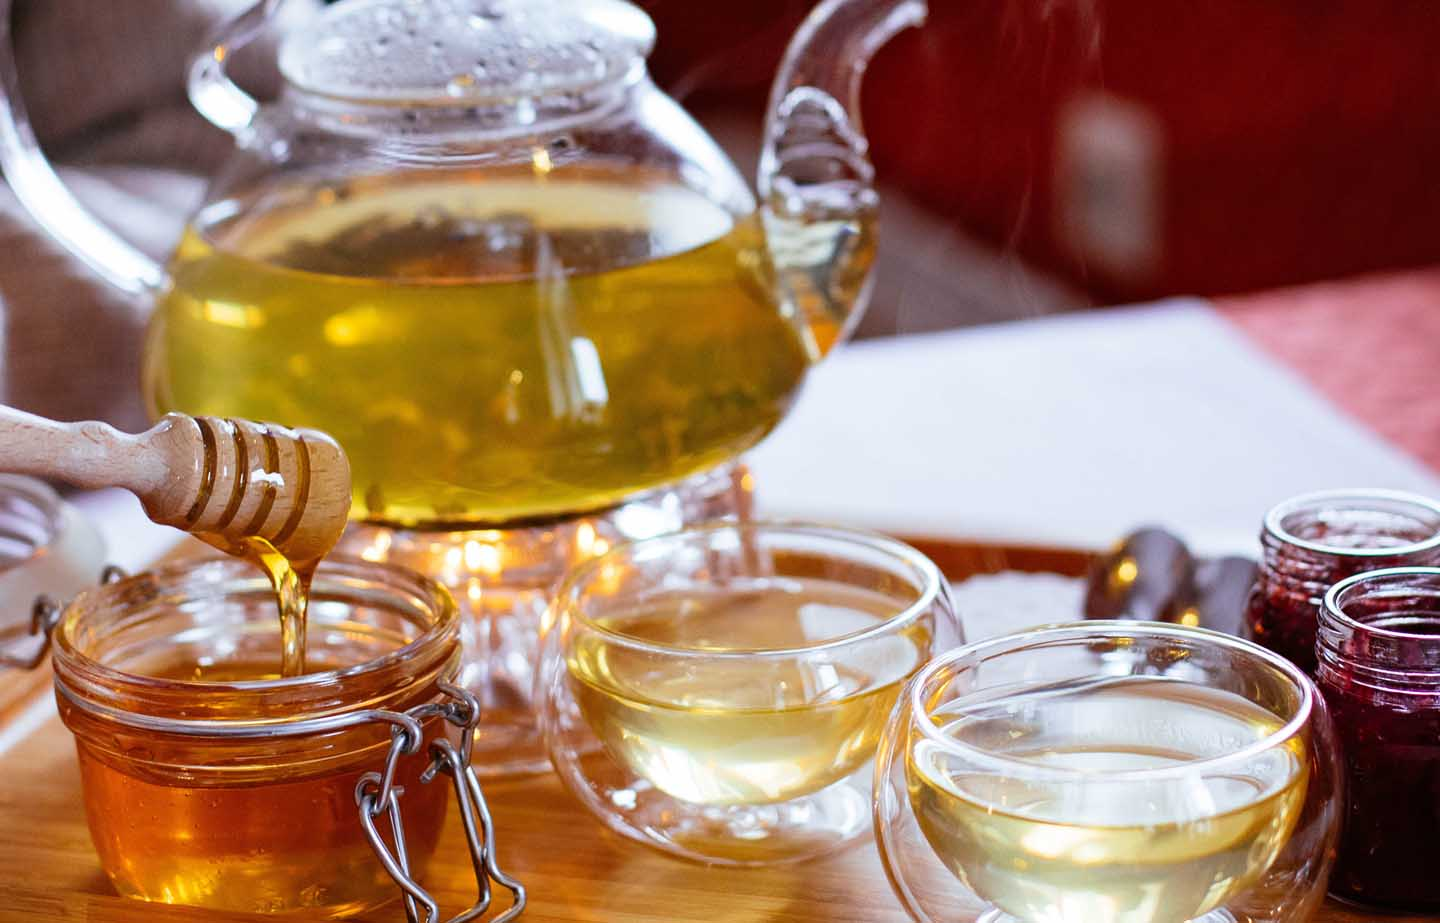 Tea sweetened with honey - Photo by Valeria Boltneva from Pexels